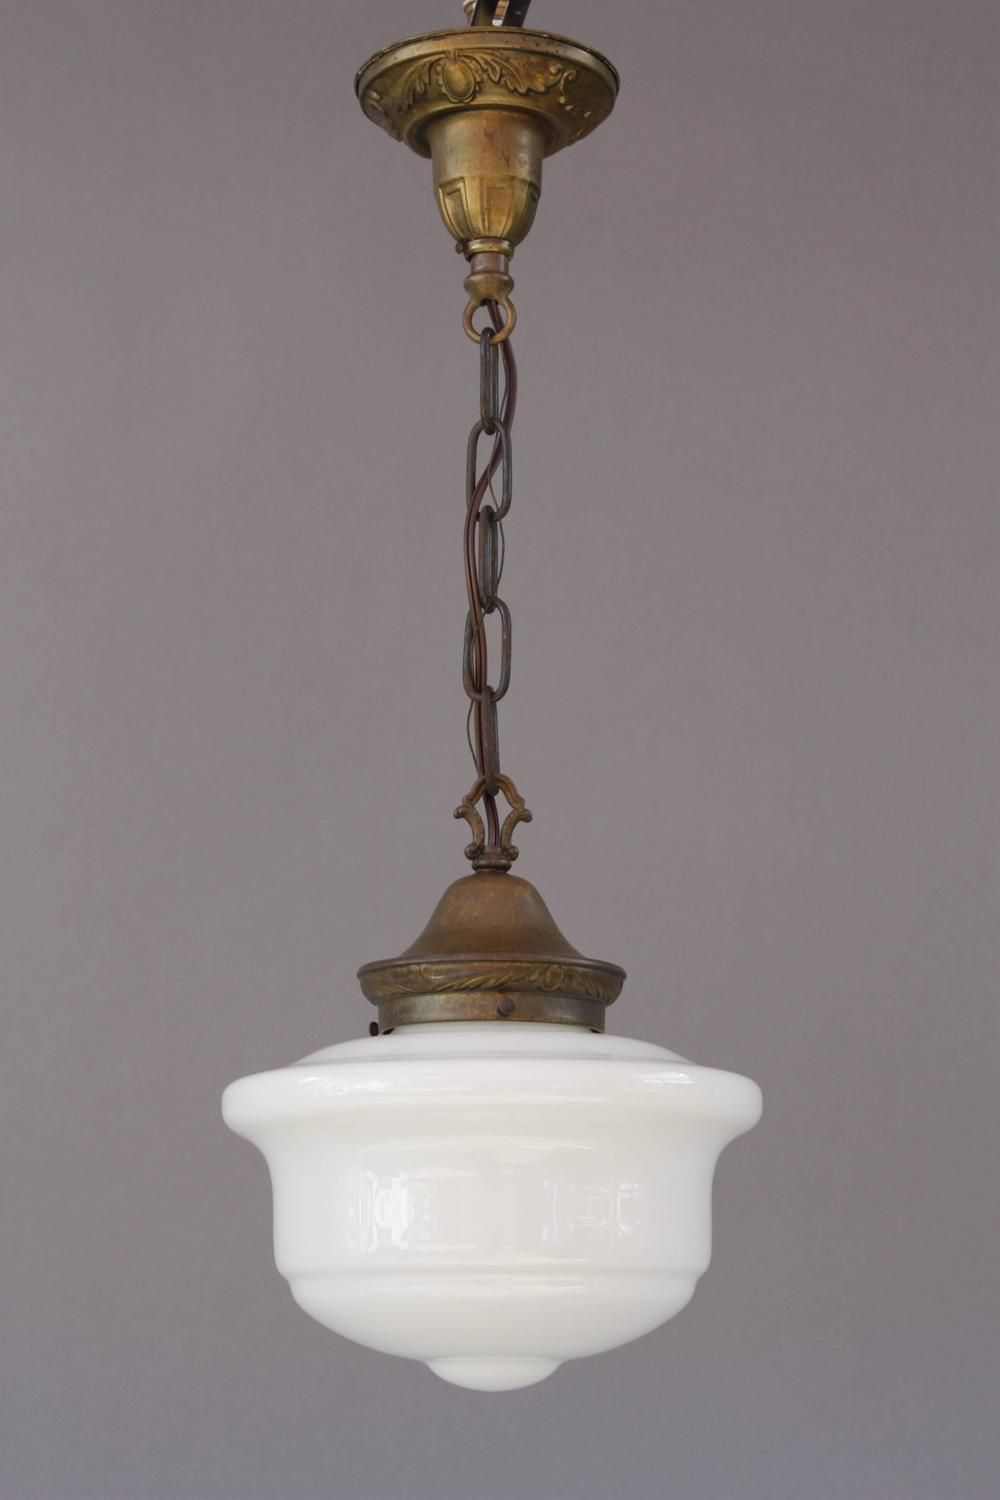 Retro Kitchen Light Fixtures 1920s Milk Glass Pendant Classic Design School House Light Lamp